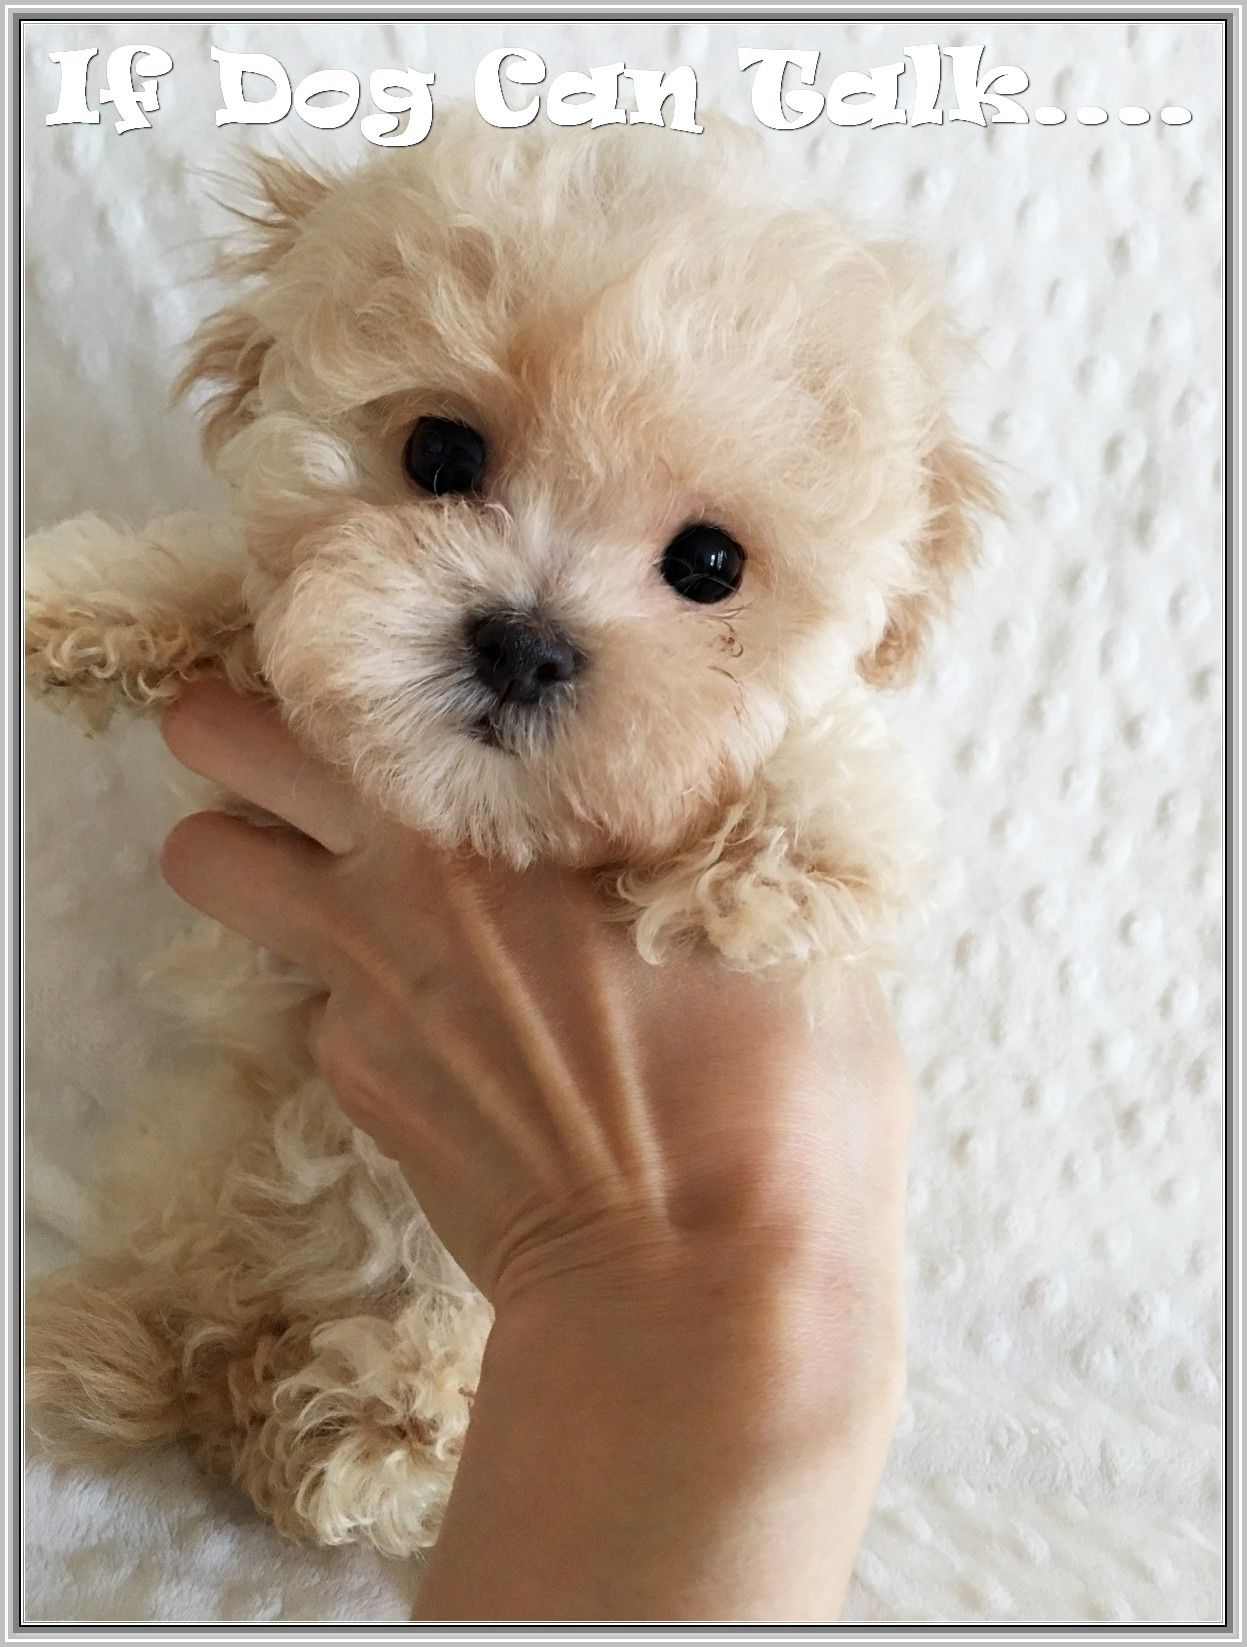 Answer To Dog Related Questions Teacup Puppies Puppies Cute